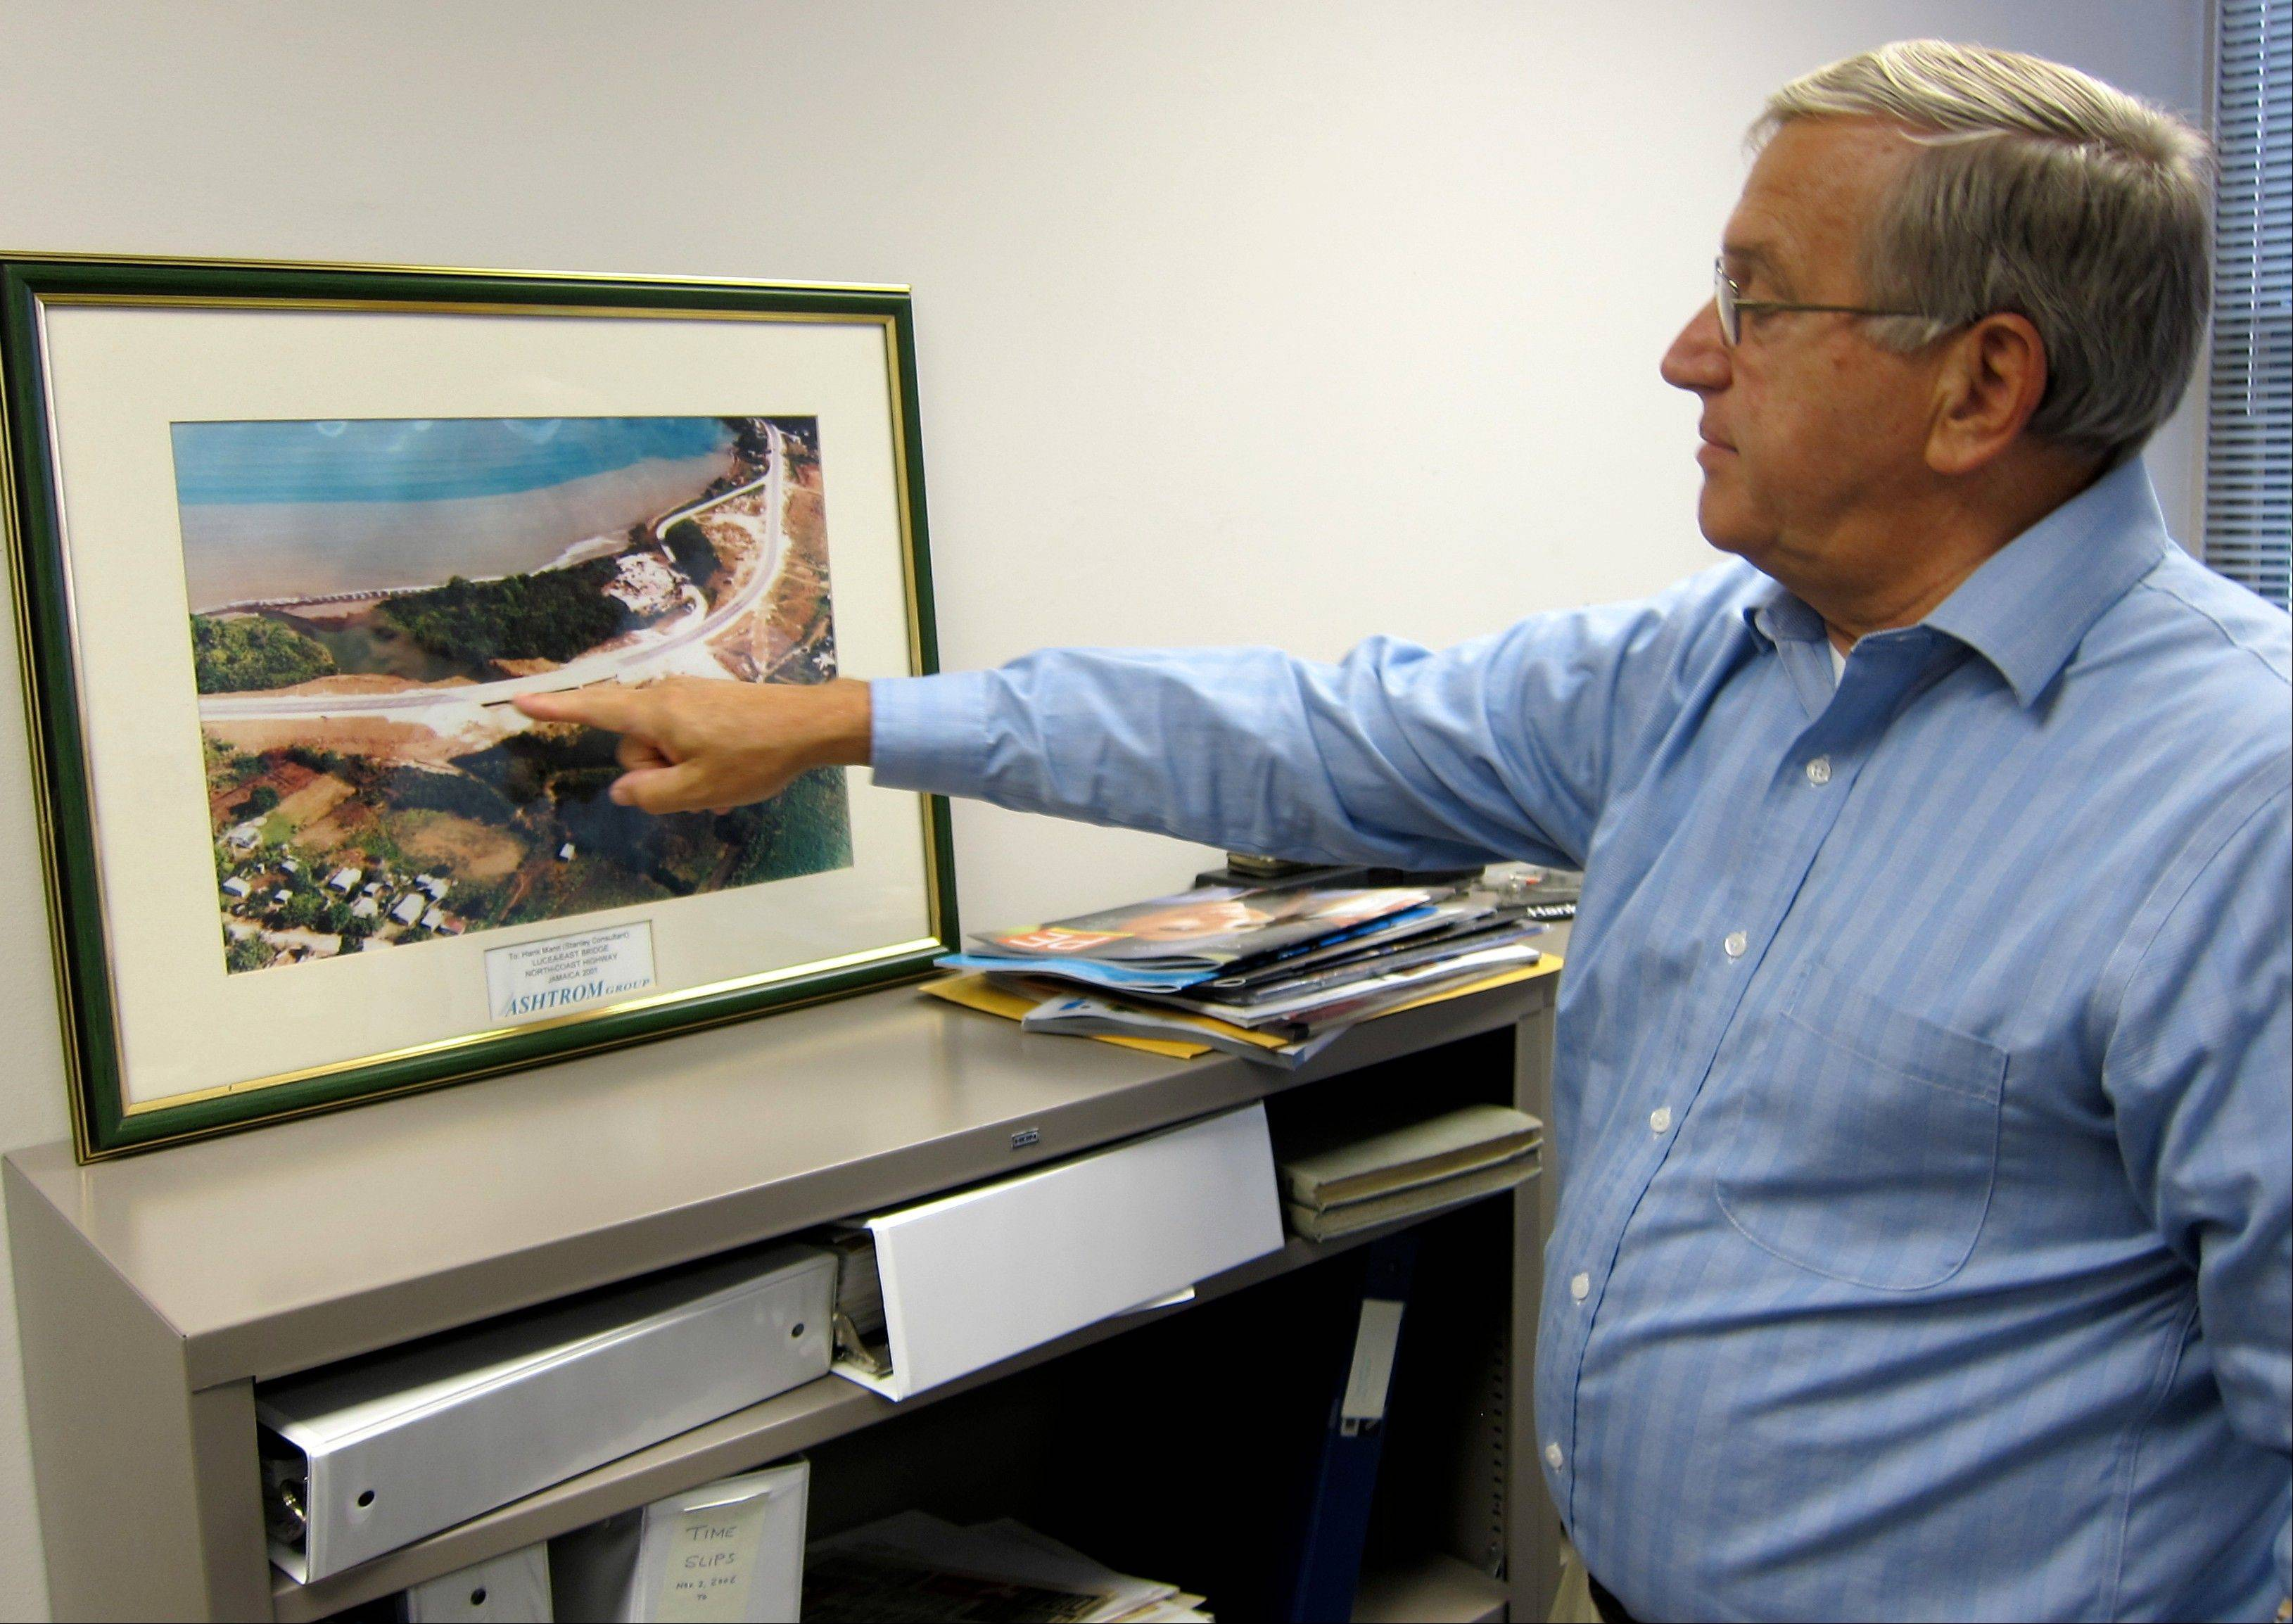 Hank Mann, 72, an engineer at Stanley Consultants, pointing at an image of a highway project he worked on, at the company's headquarters in Muscatine, Iowa.